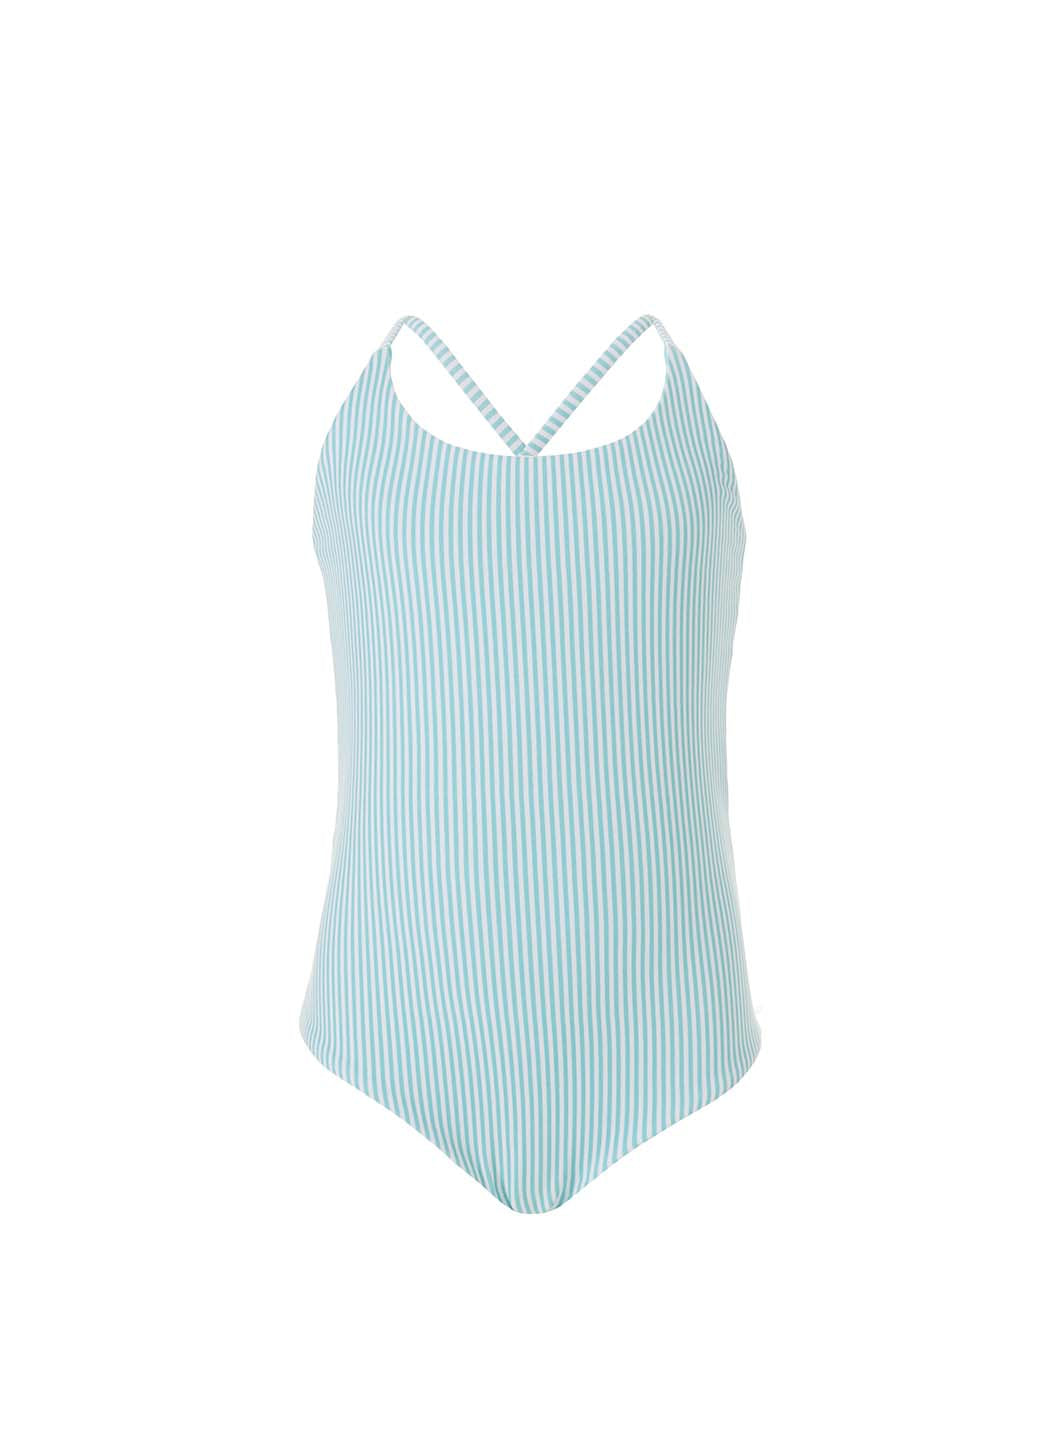 Baby Vicky Mint Stripe/Mint Reversible Swimsuit